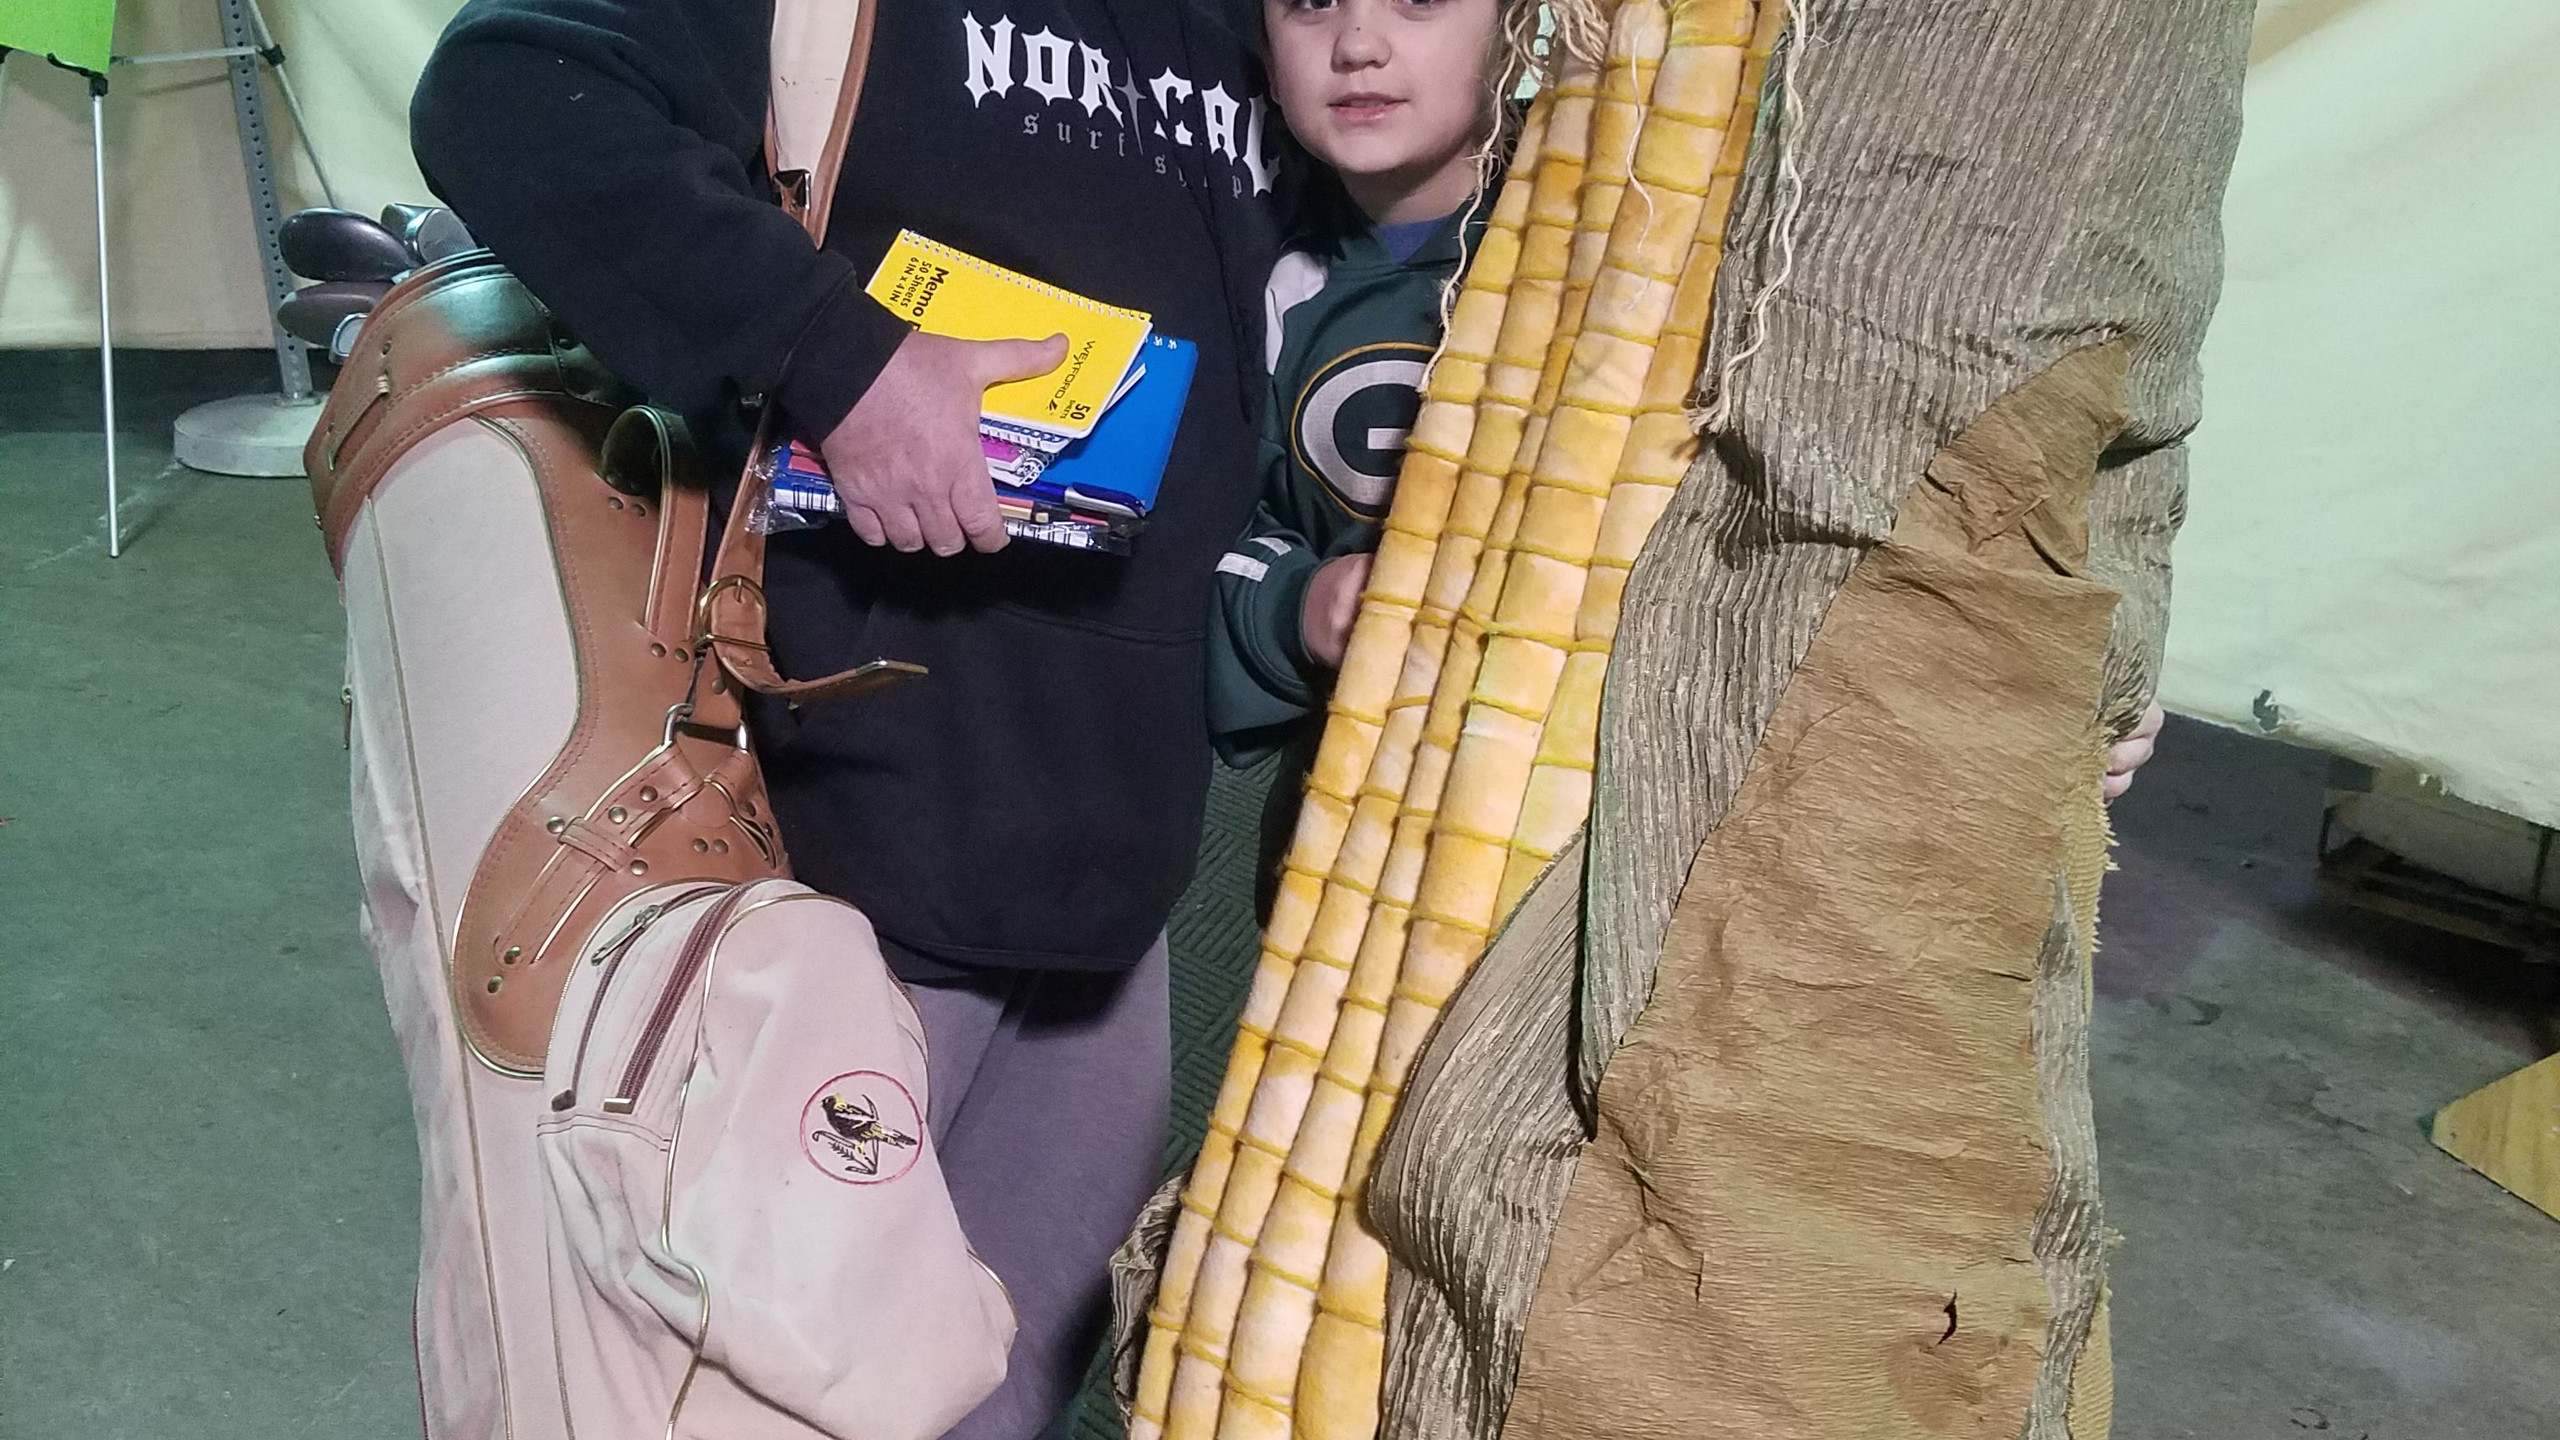 Look who got the giant ear of corn